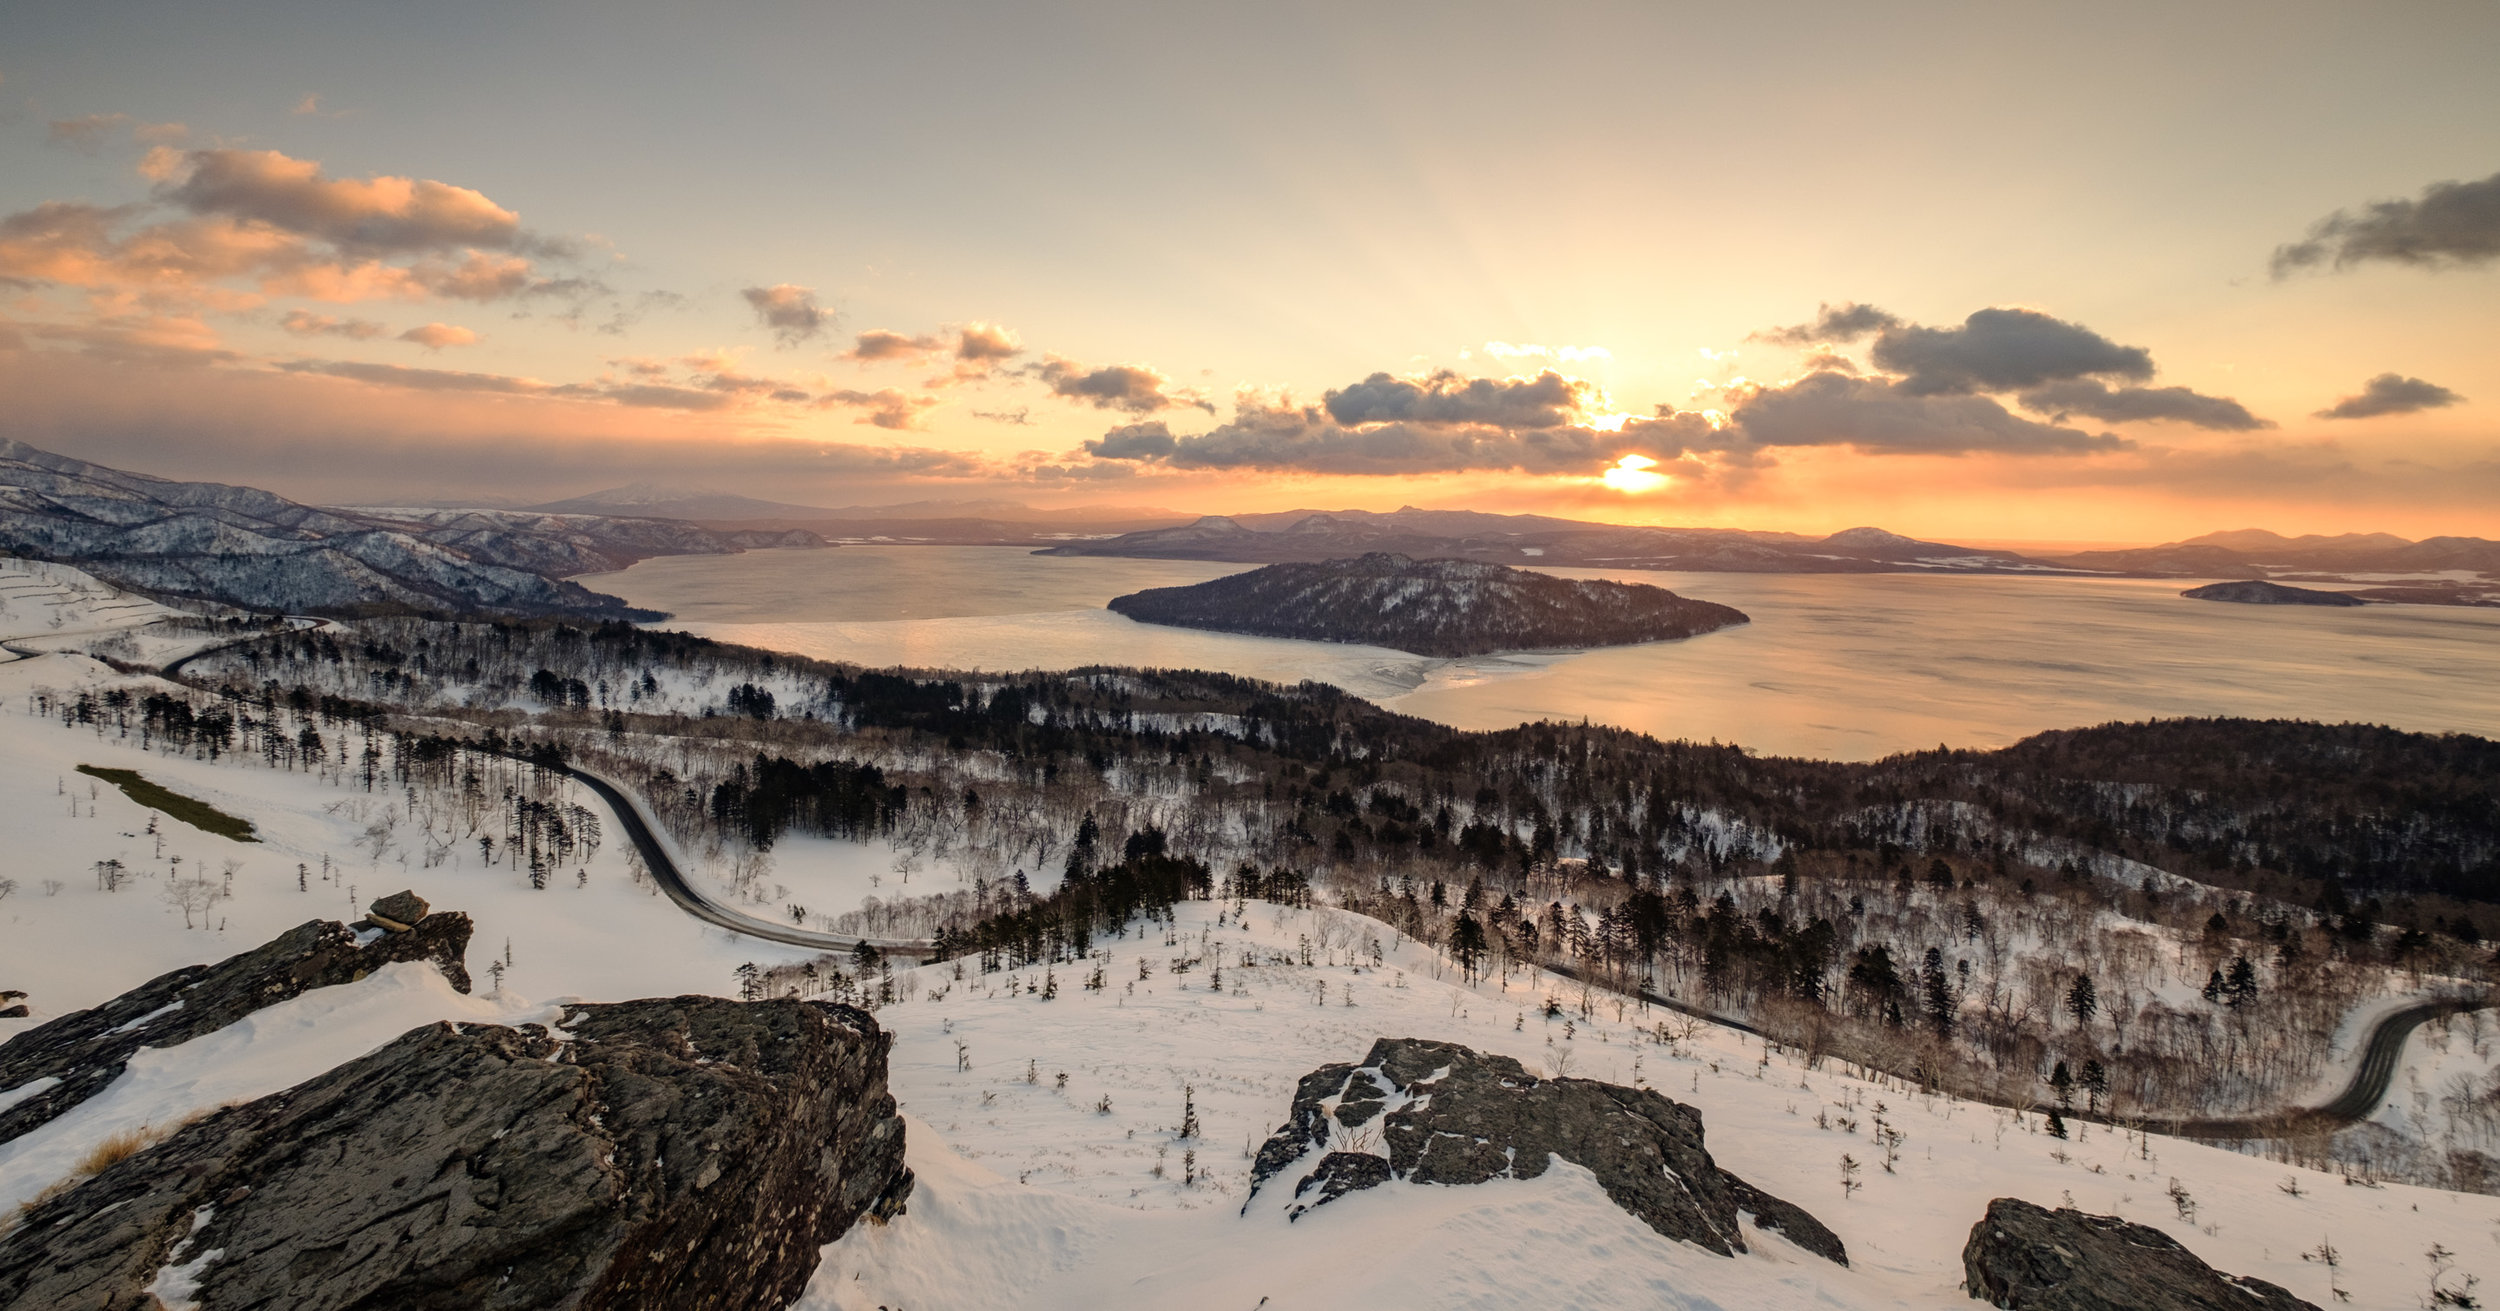 The sun rises over Bihiro pass - 10mm, F9, 1/55s at ISO200